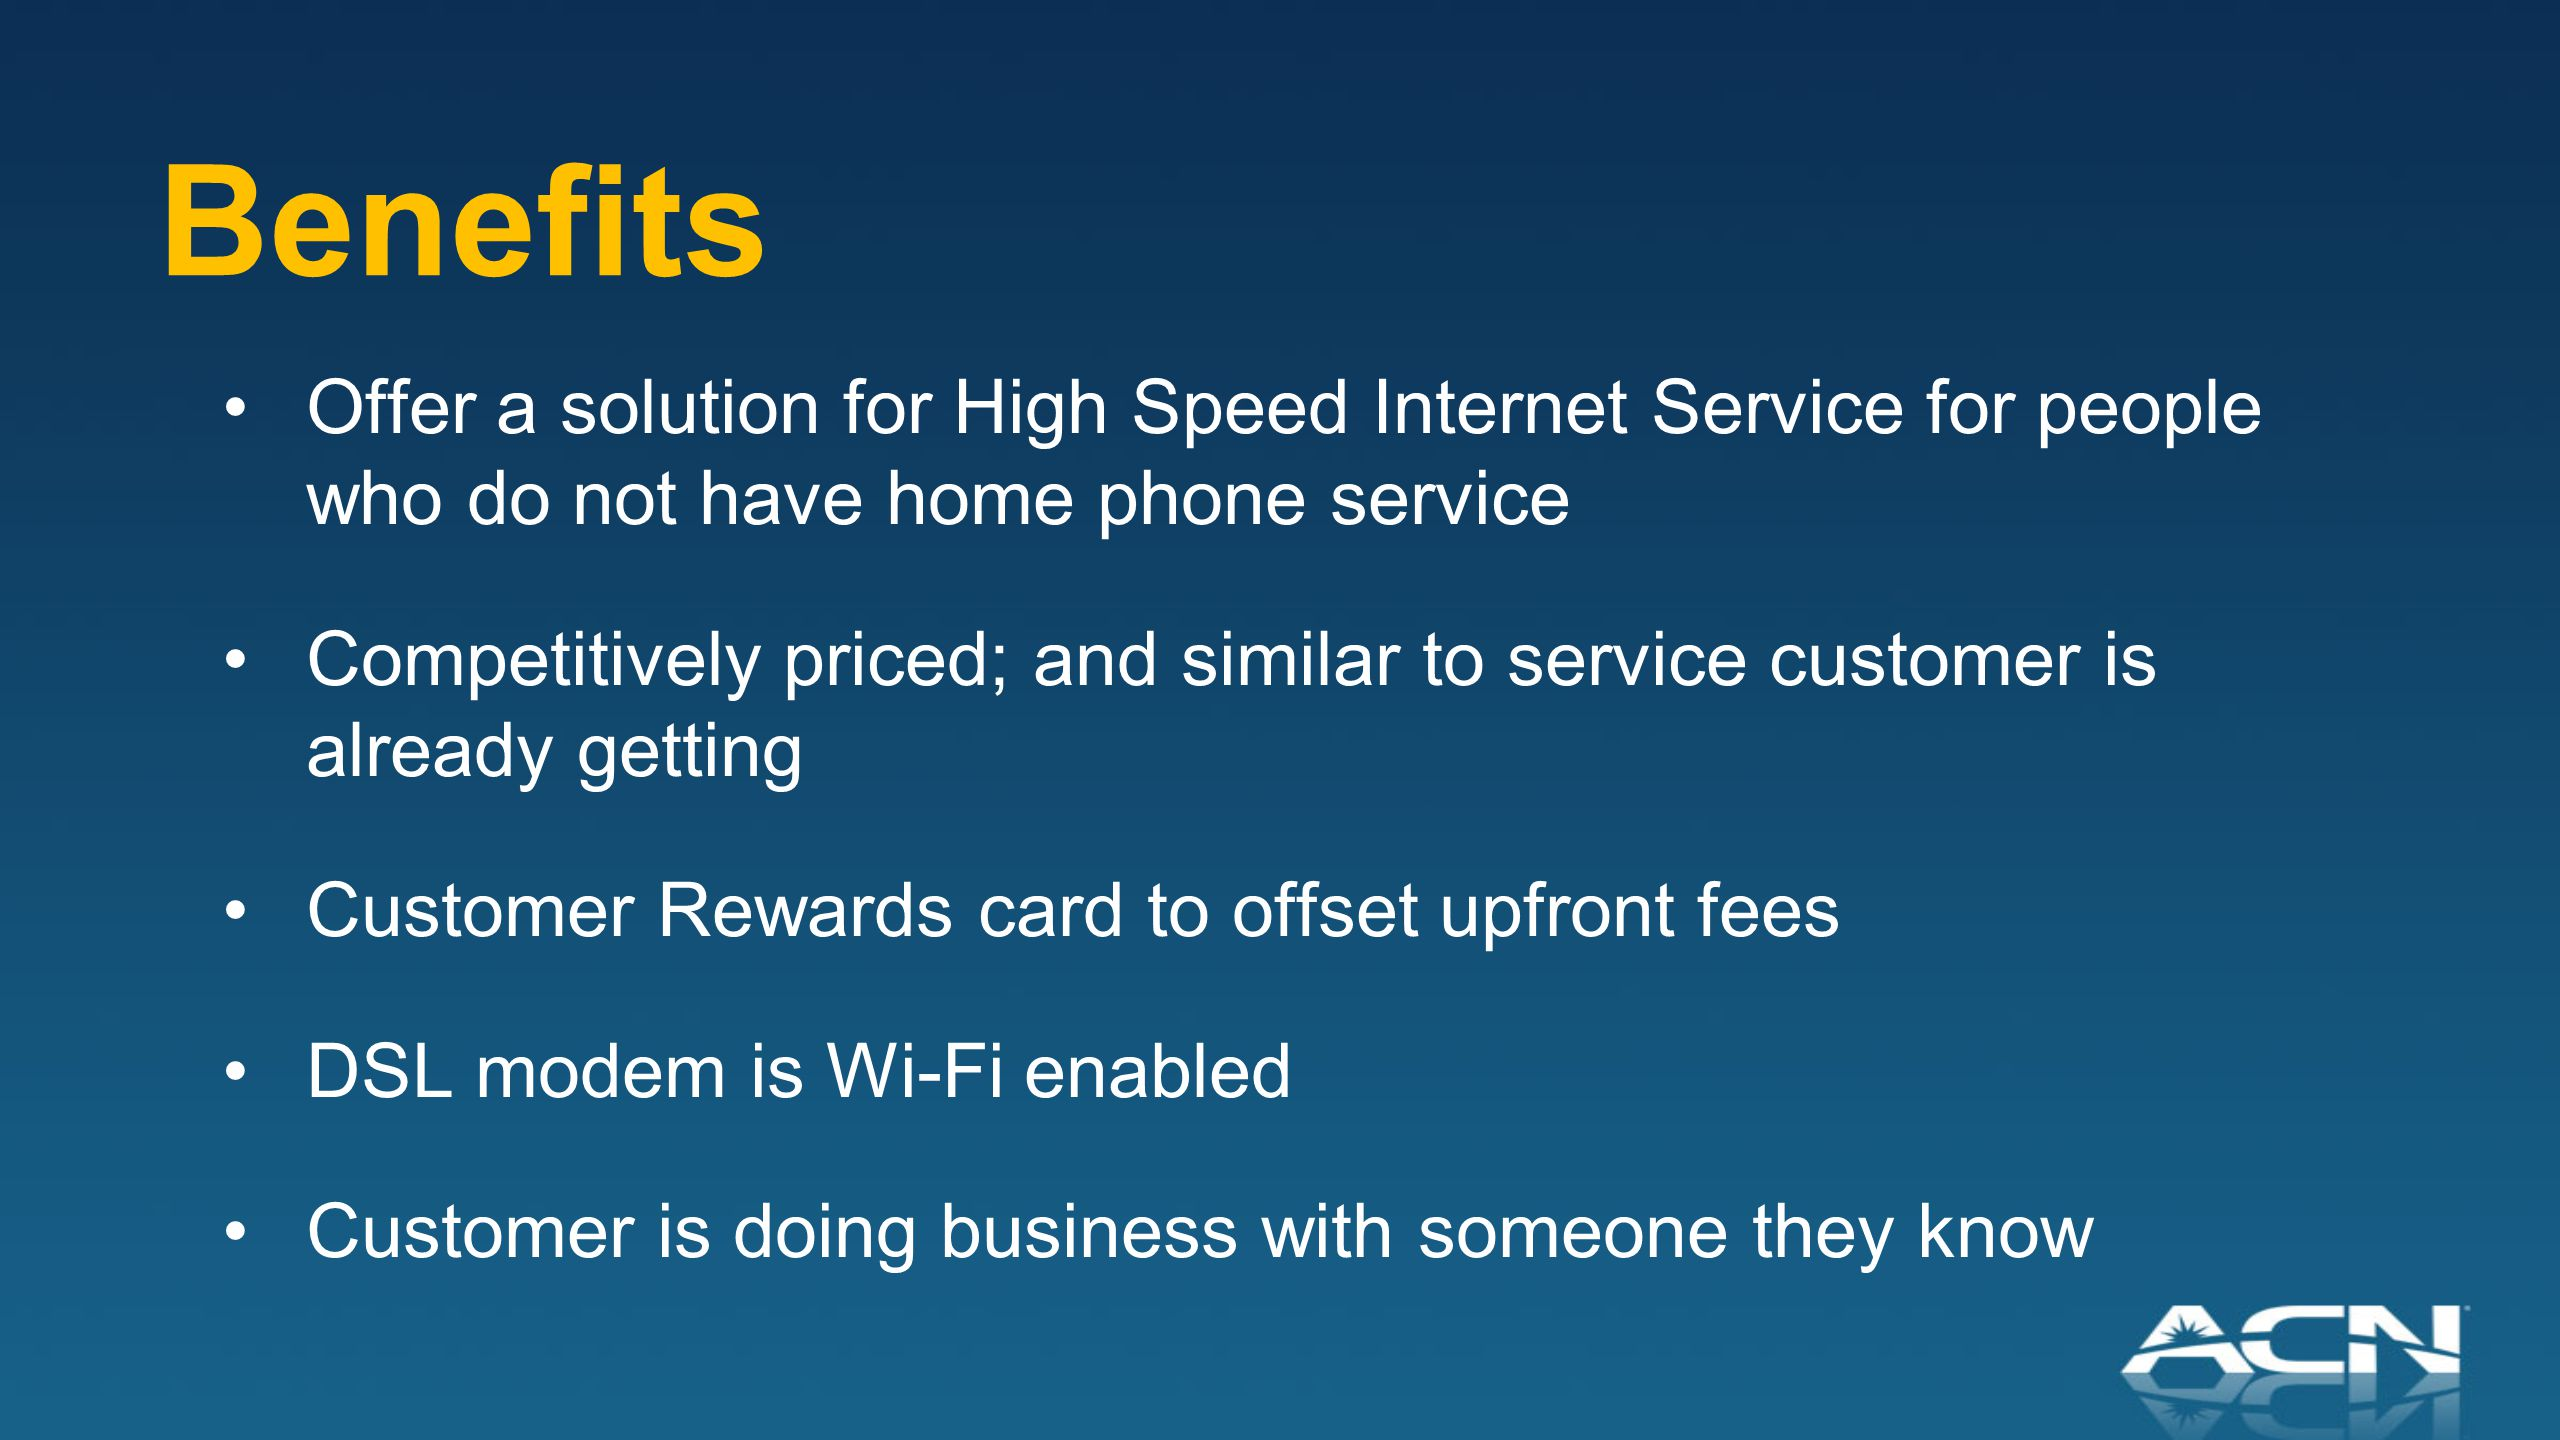 Benefits Offer a solution for High Speed Internet Service for people who do not have home phone service Competitively priced; and similar to service customer is already getting Customer Rewards card to offset upfront fees DSL modem is Wi-Fi enabled Customer is doing business with someone they know